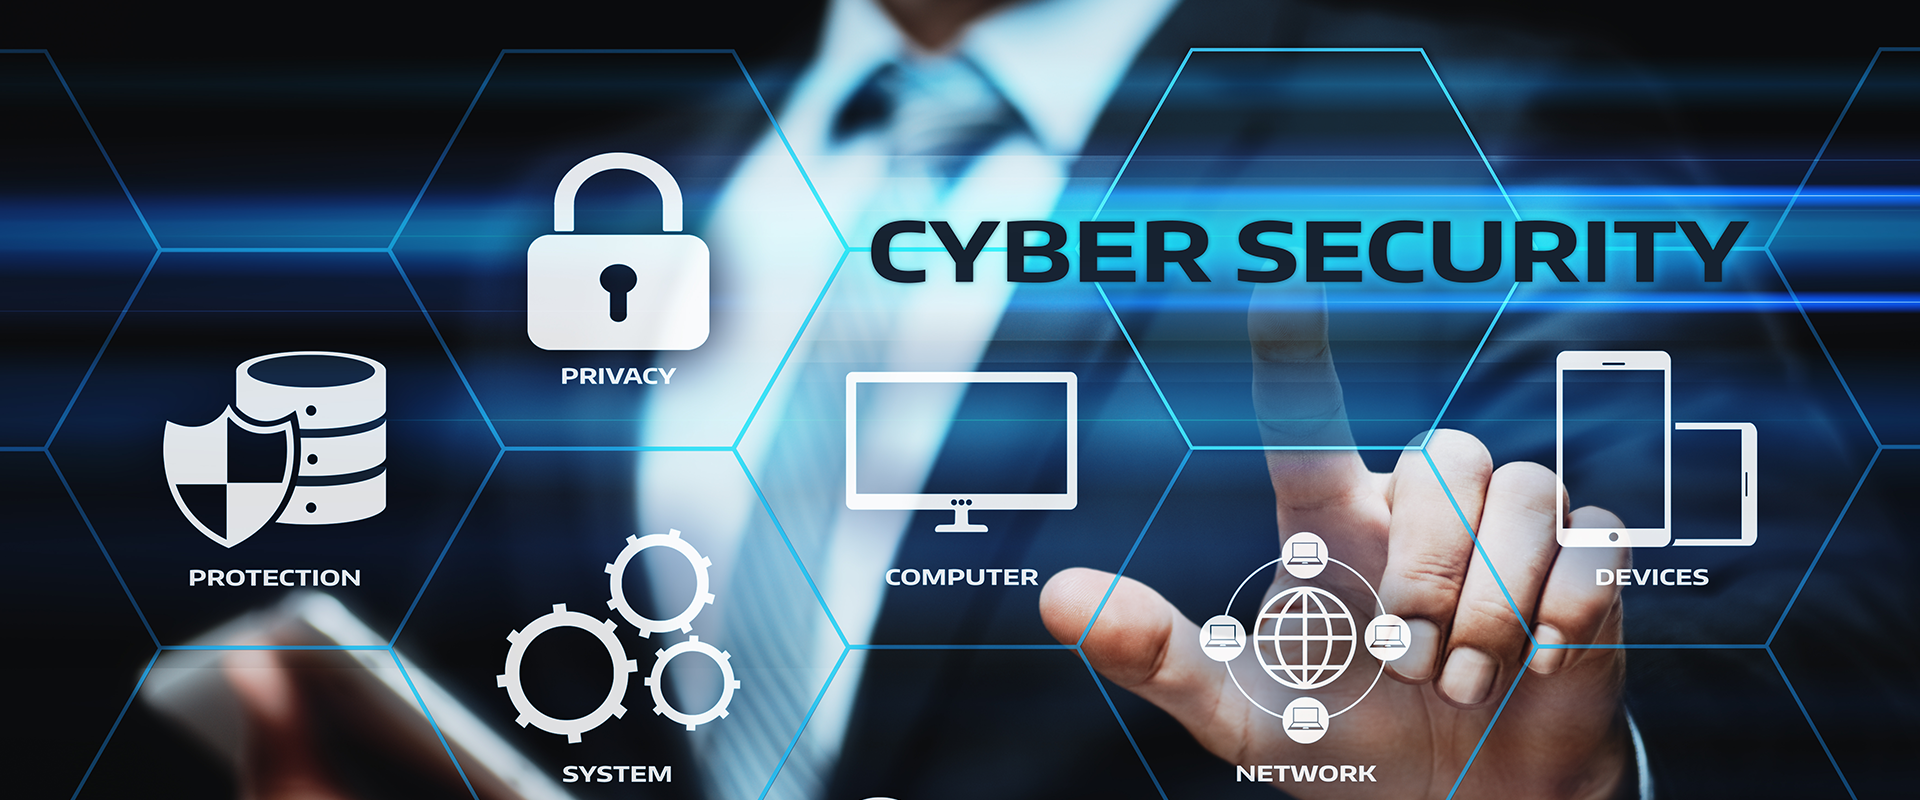 cybersecurity-in-government